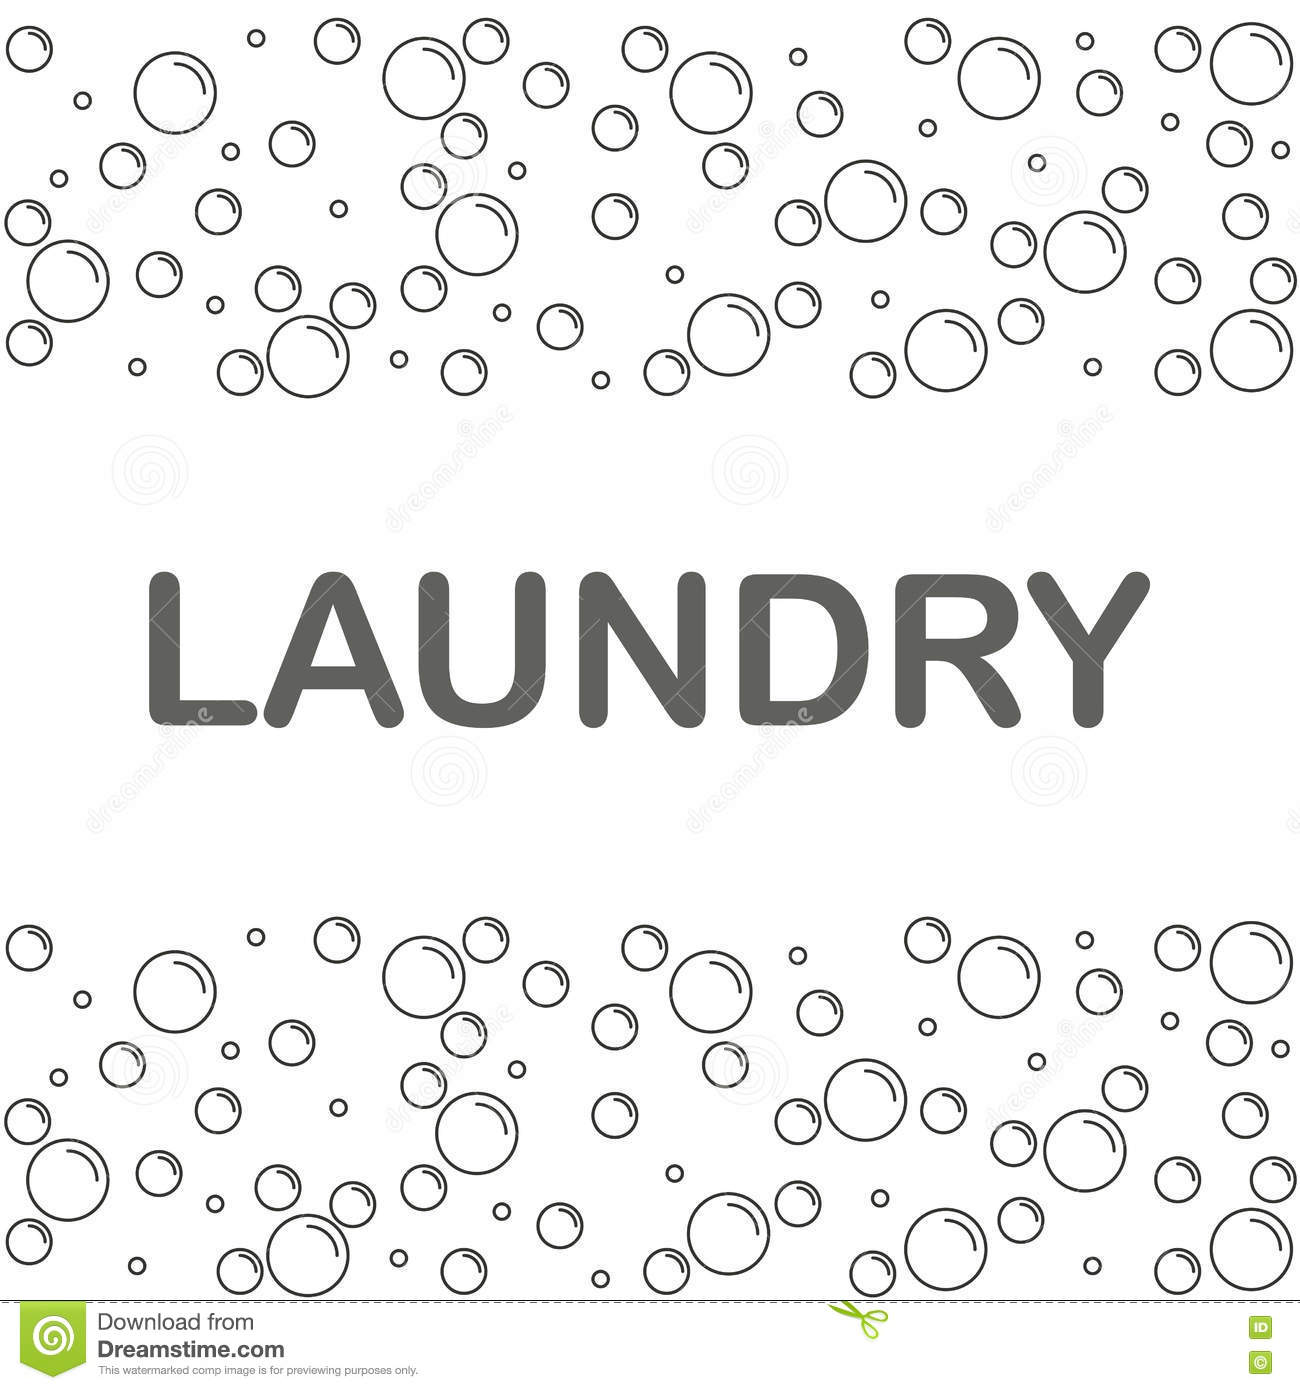 Laundry Banner Or Poster With Bubbles On A White